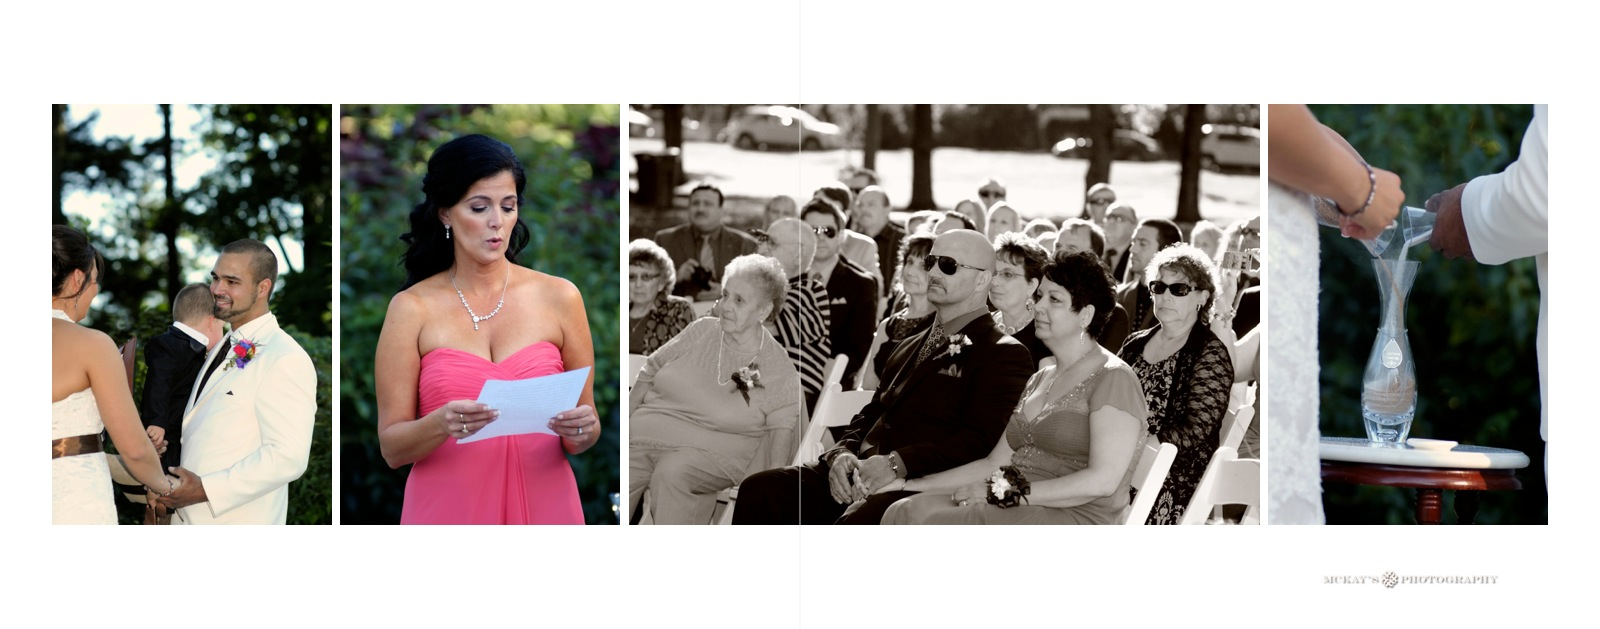 outdoor Syracuse wedding locations at Hoopes Park in Auburn by McKay's Photography